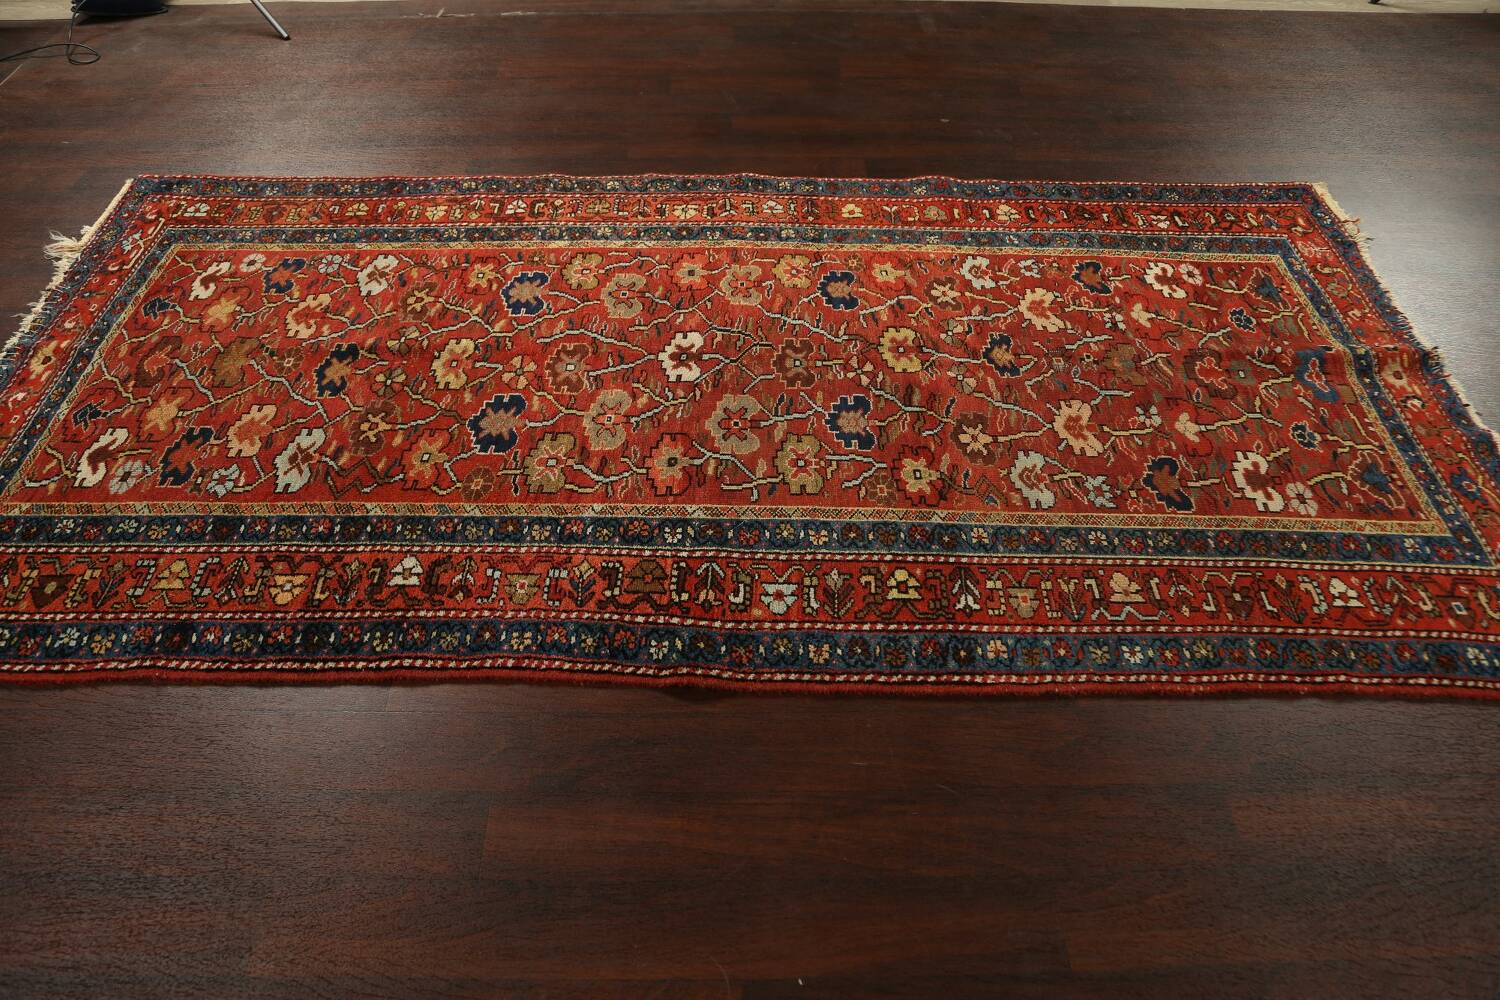 Pre-1900 Antique Vegetable Dye Sultanabad Persian Area Rug 5x10 image 18